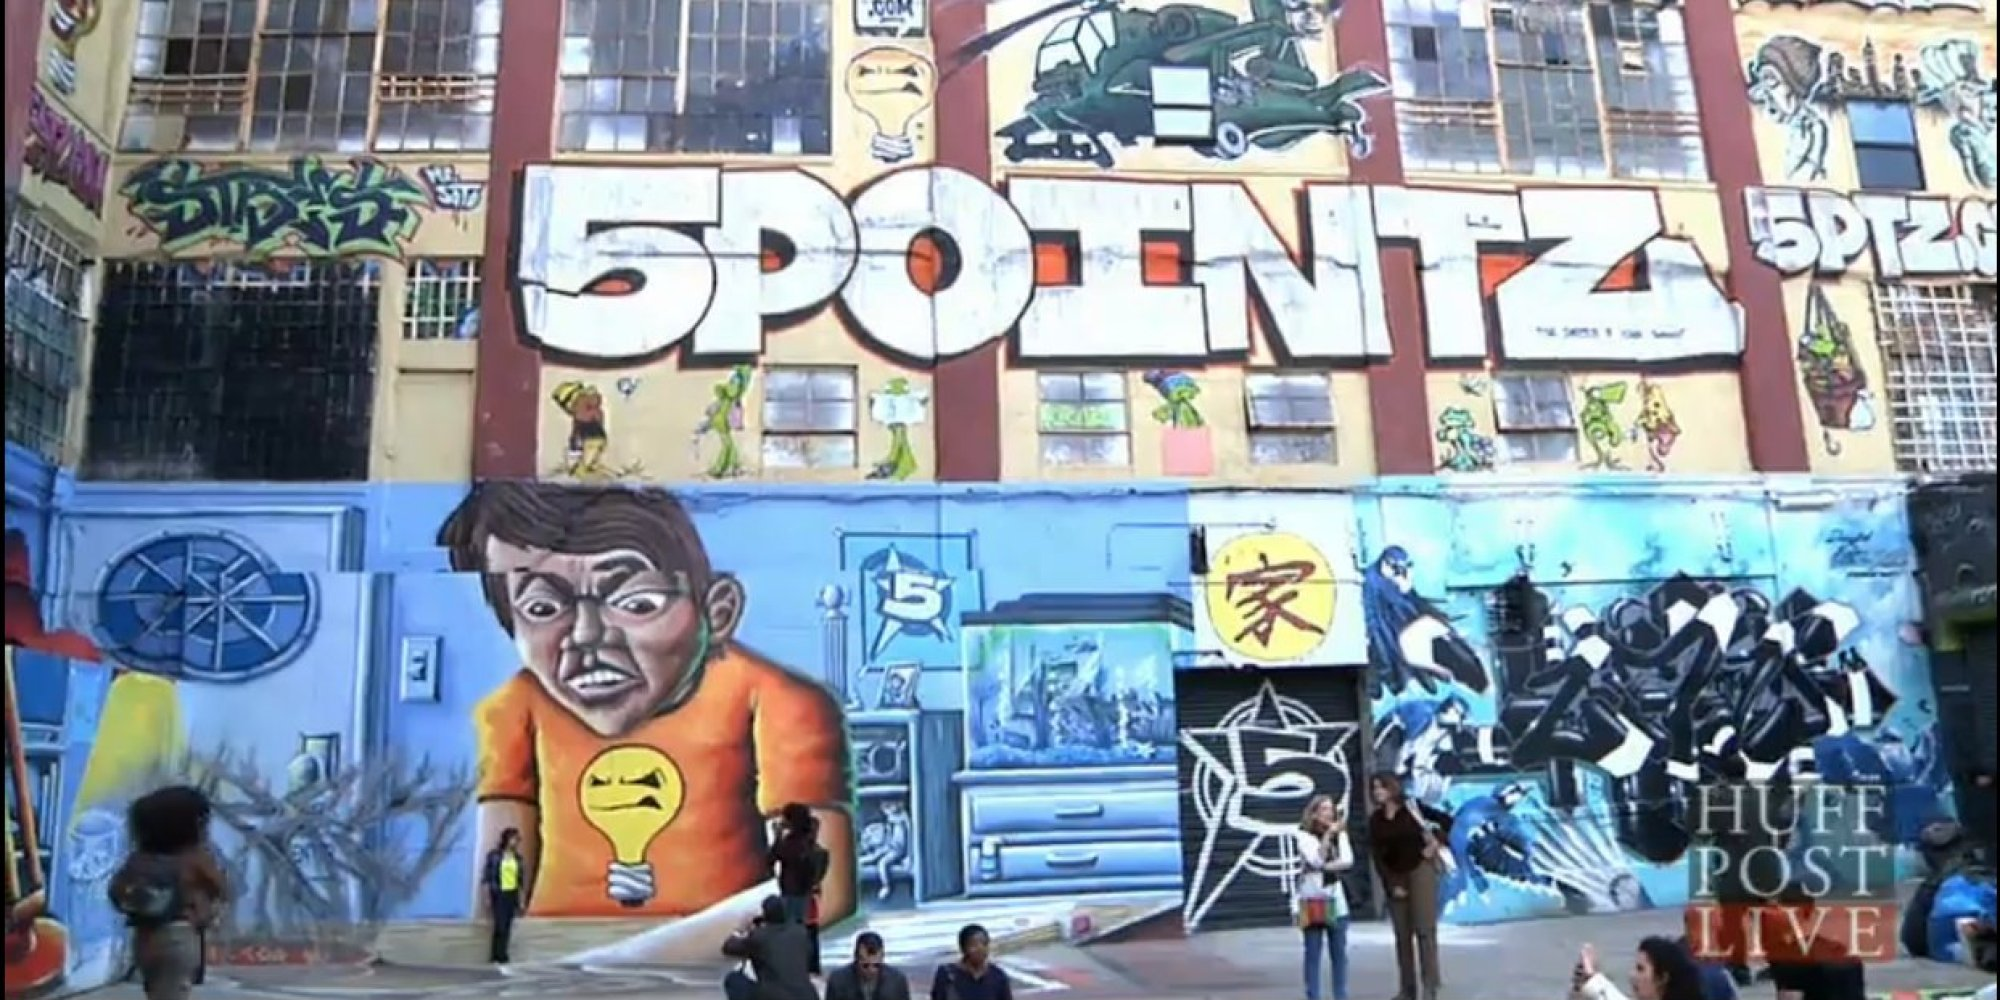 Artists mourn impeding demolition of 5 pointz new yorks unofficial graffiti museum video huffpost